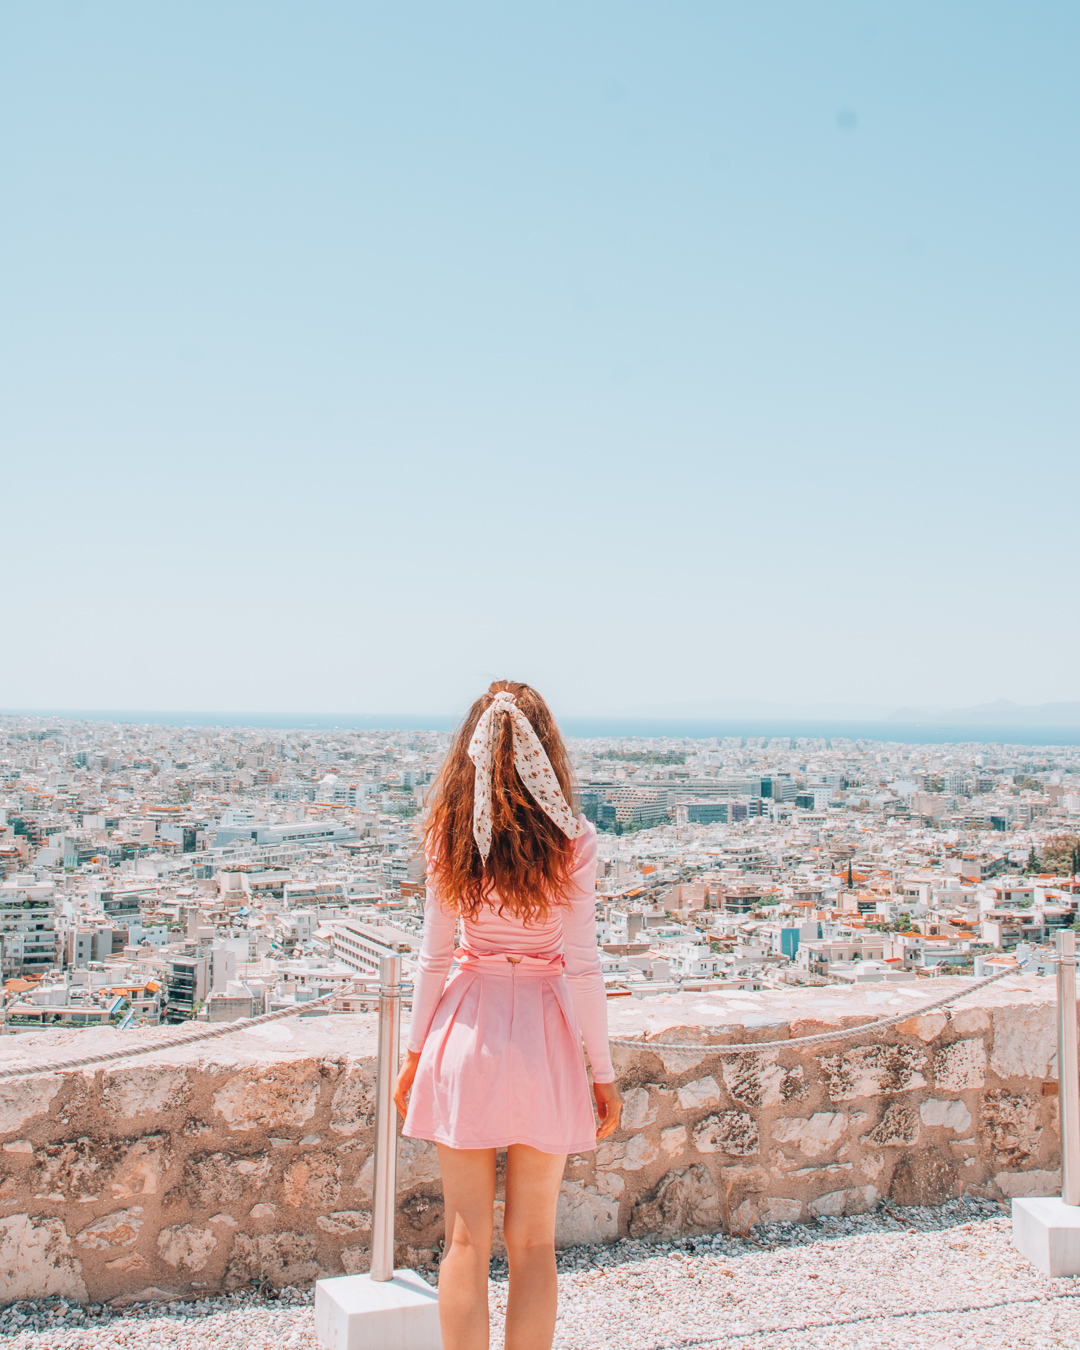 Girl looking at the view from the Acropolis